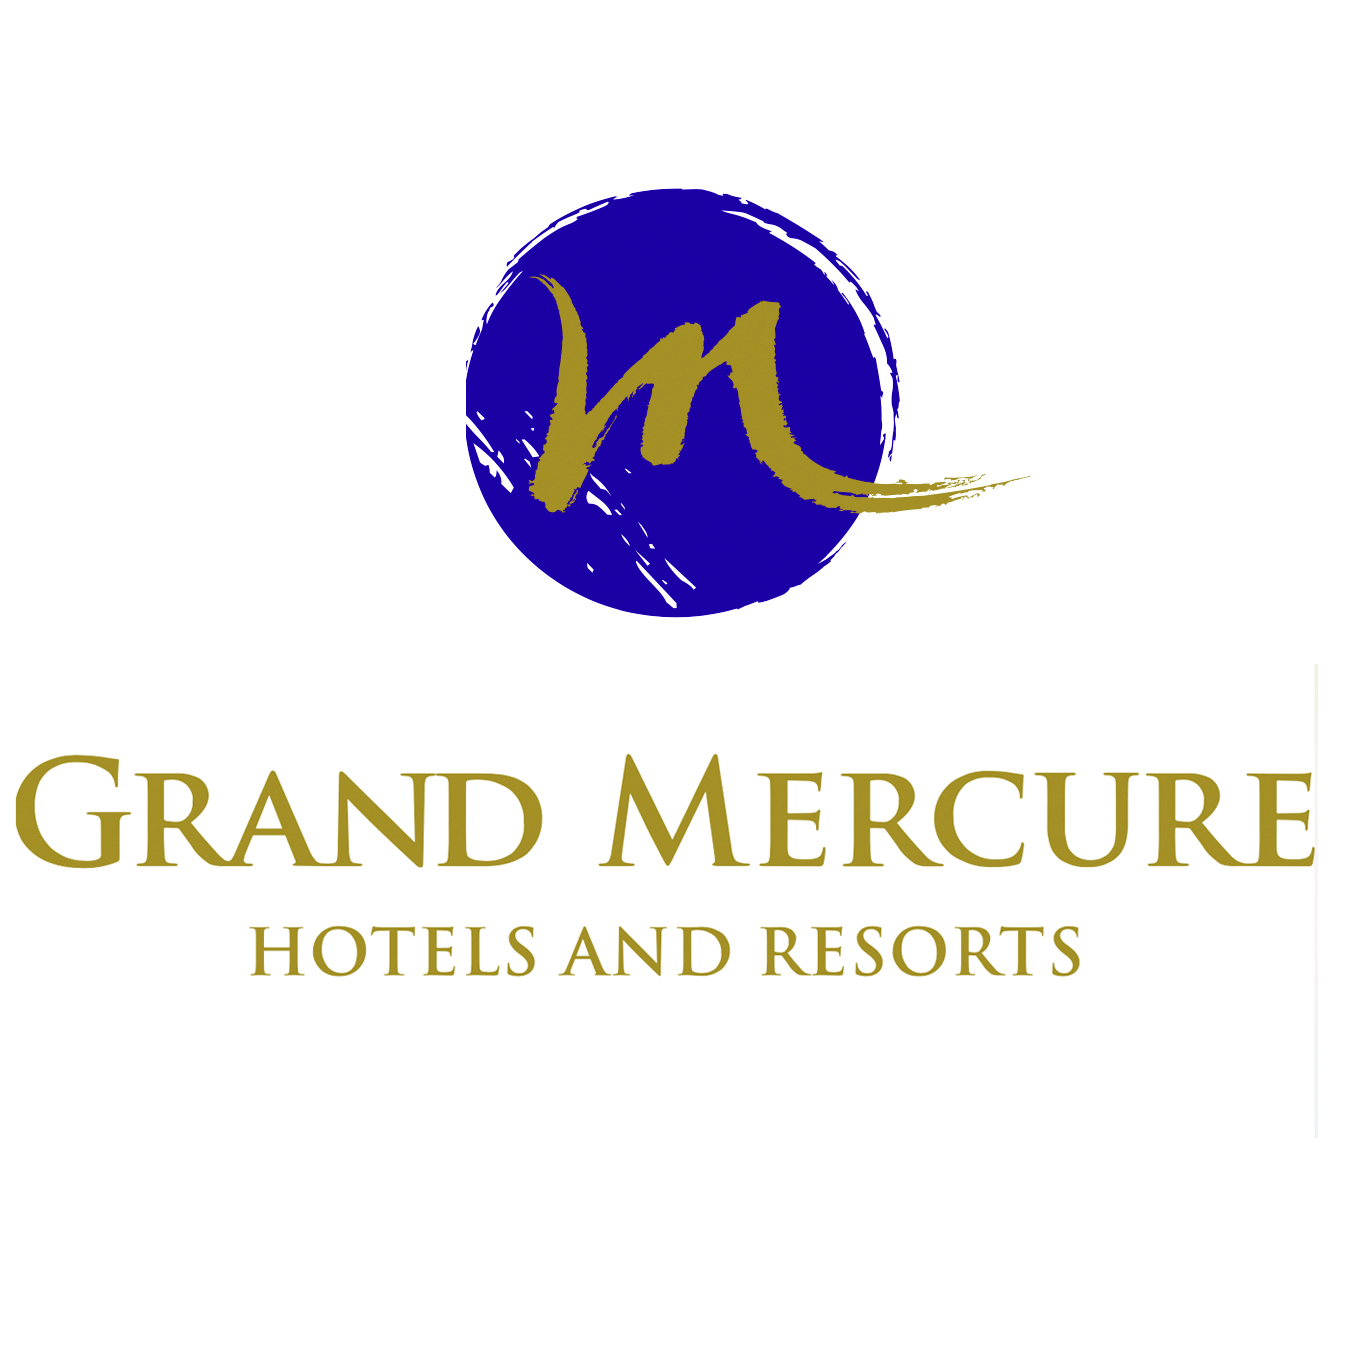 GRAND MERCURE HOTELS